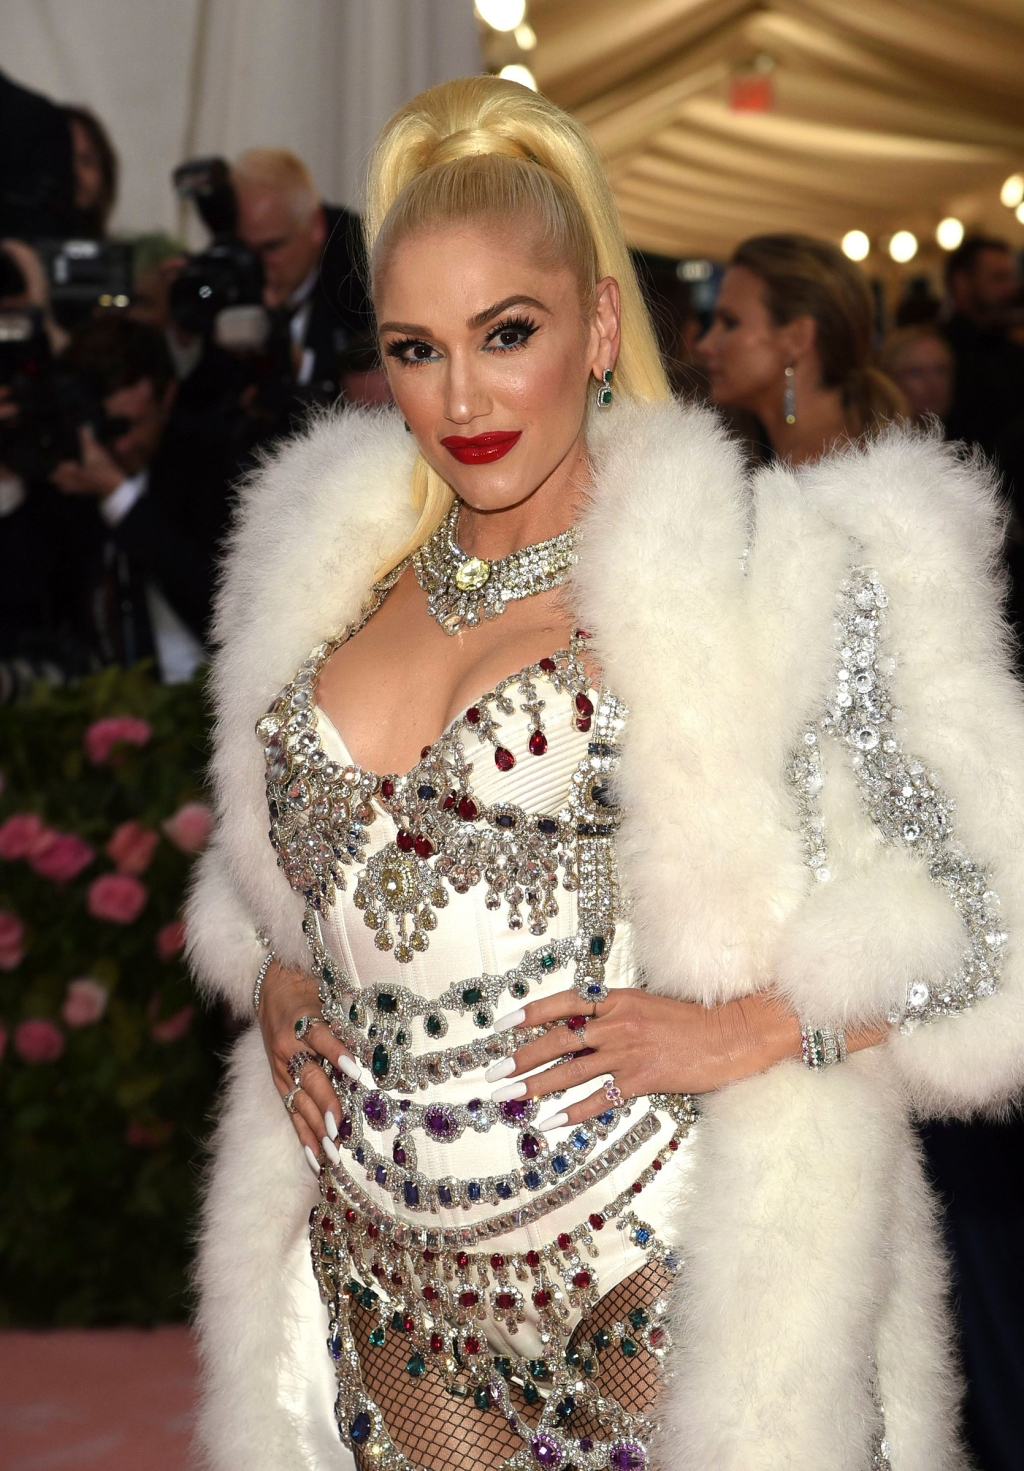 Gwen Stefani attends The 2019 Met Gala Celebrating Camp: Notes on Fashion at Metropolitan Museum of Art on May 06, 2019 in New York City.